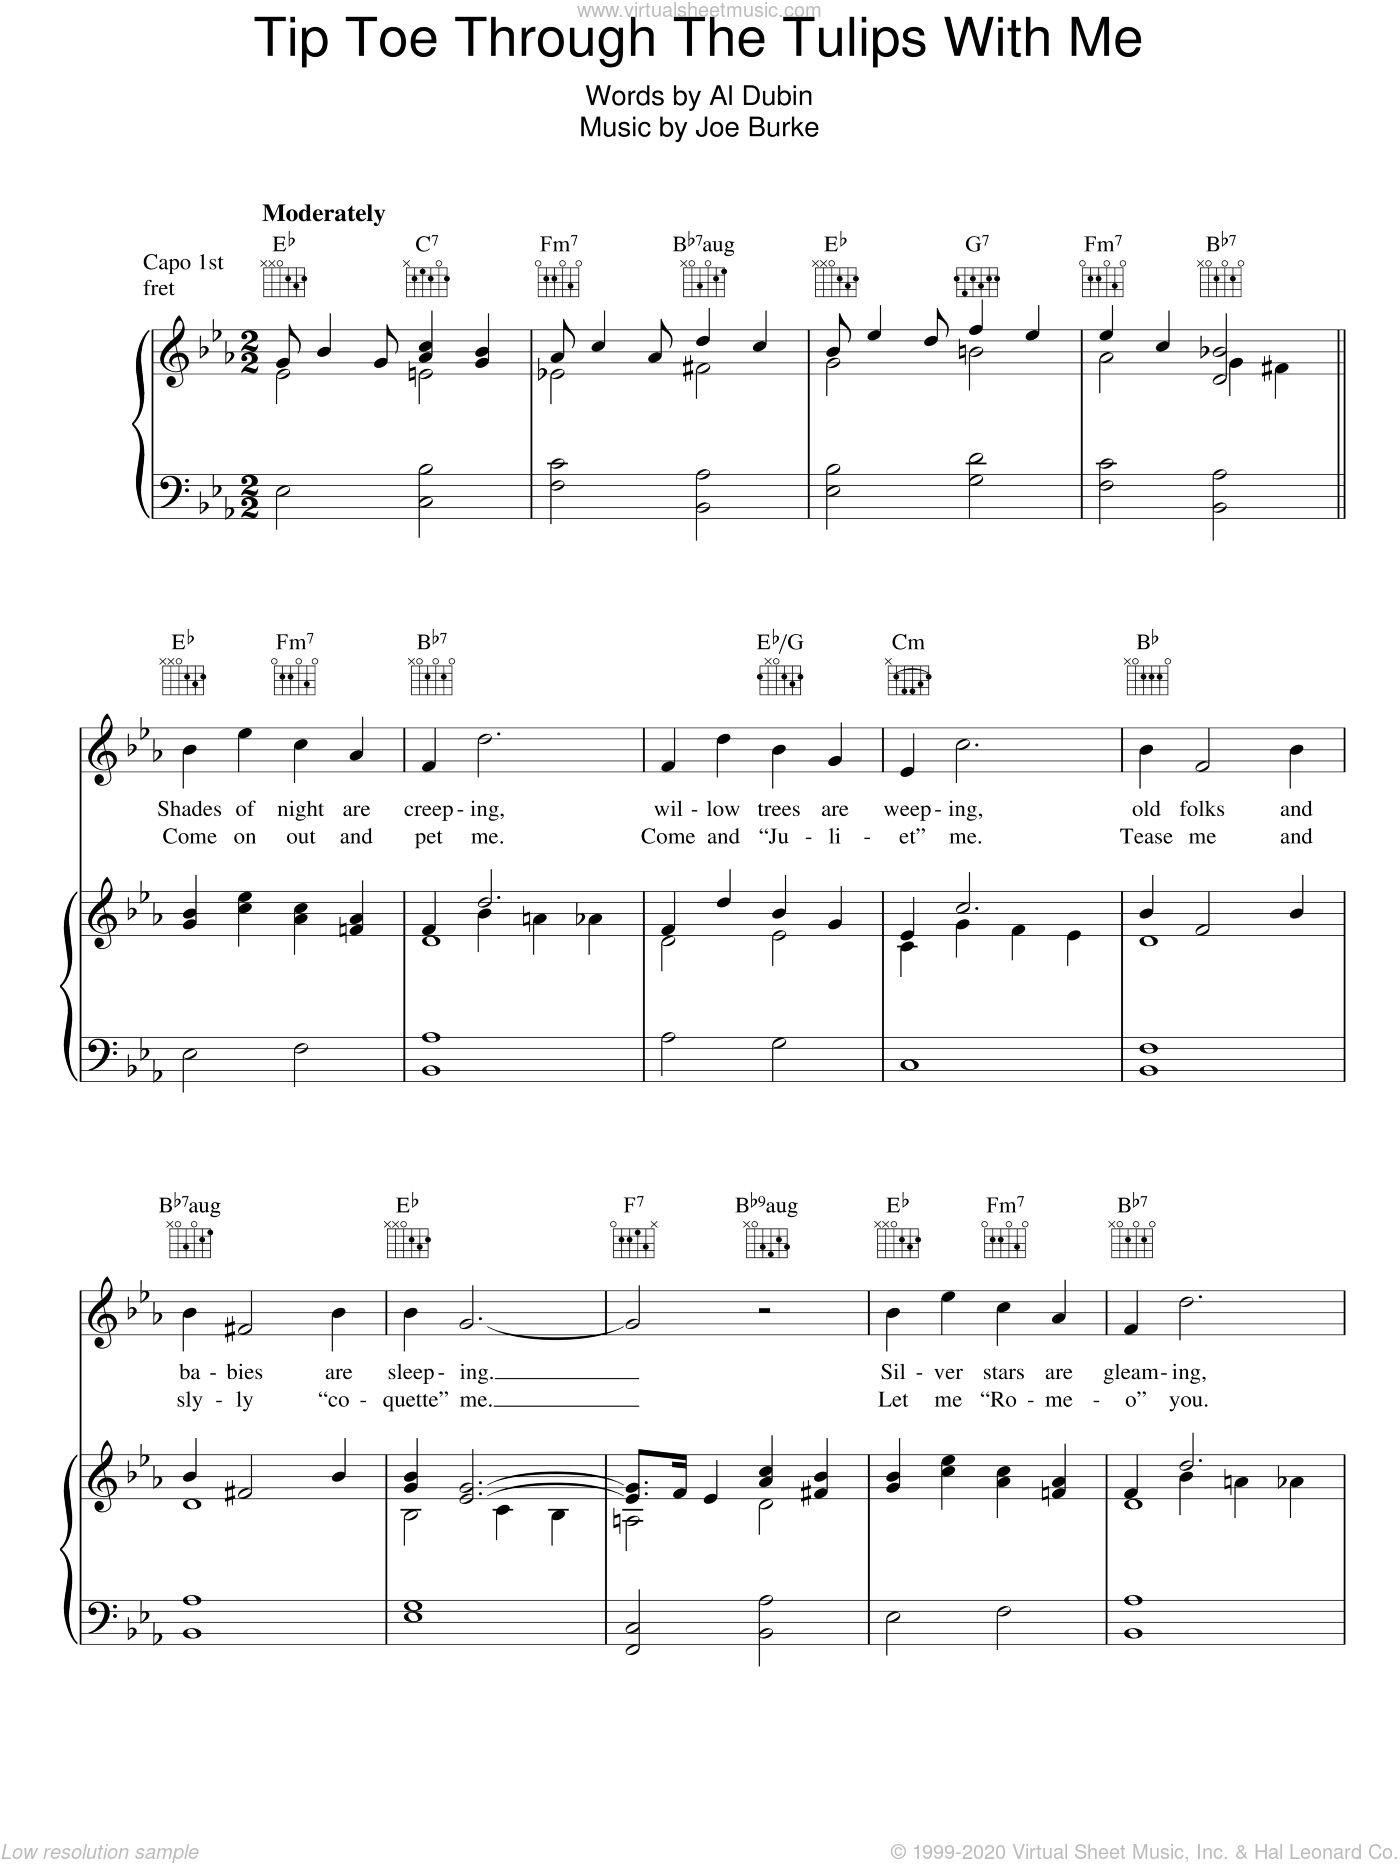 Tip Toe Through The Tulips With Me sheet music for voice, piano or guitar by Al Dubin